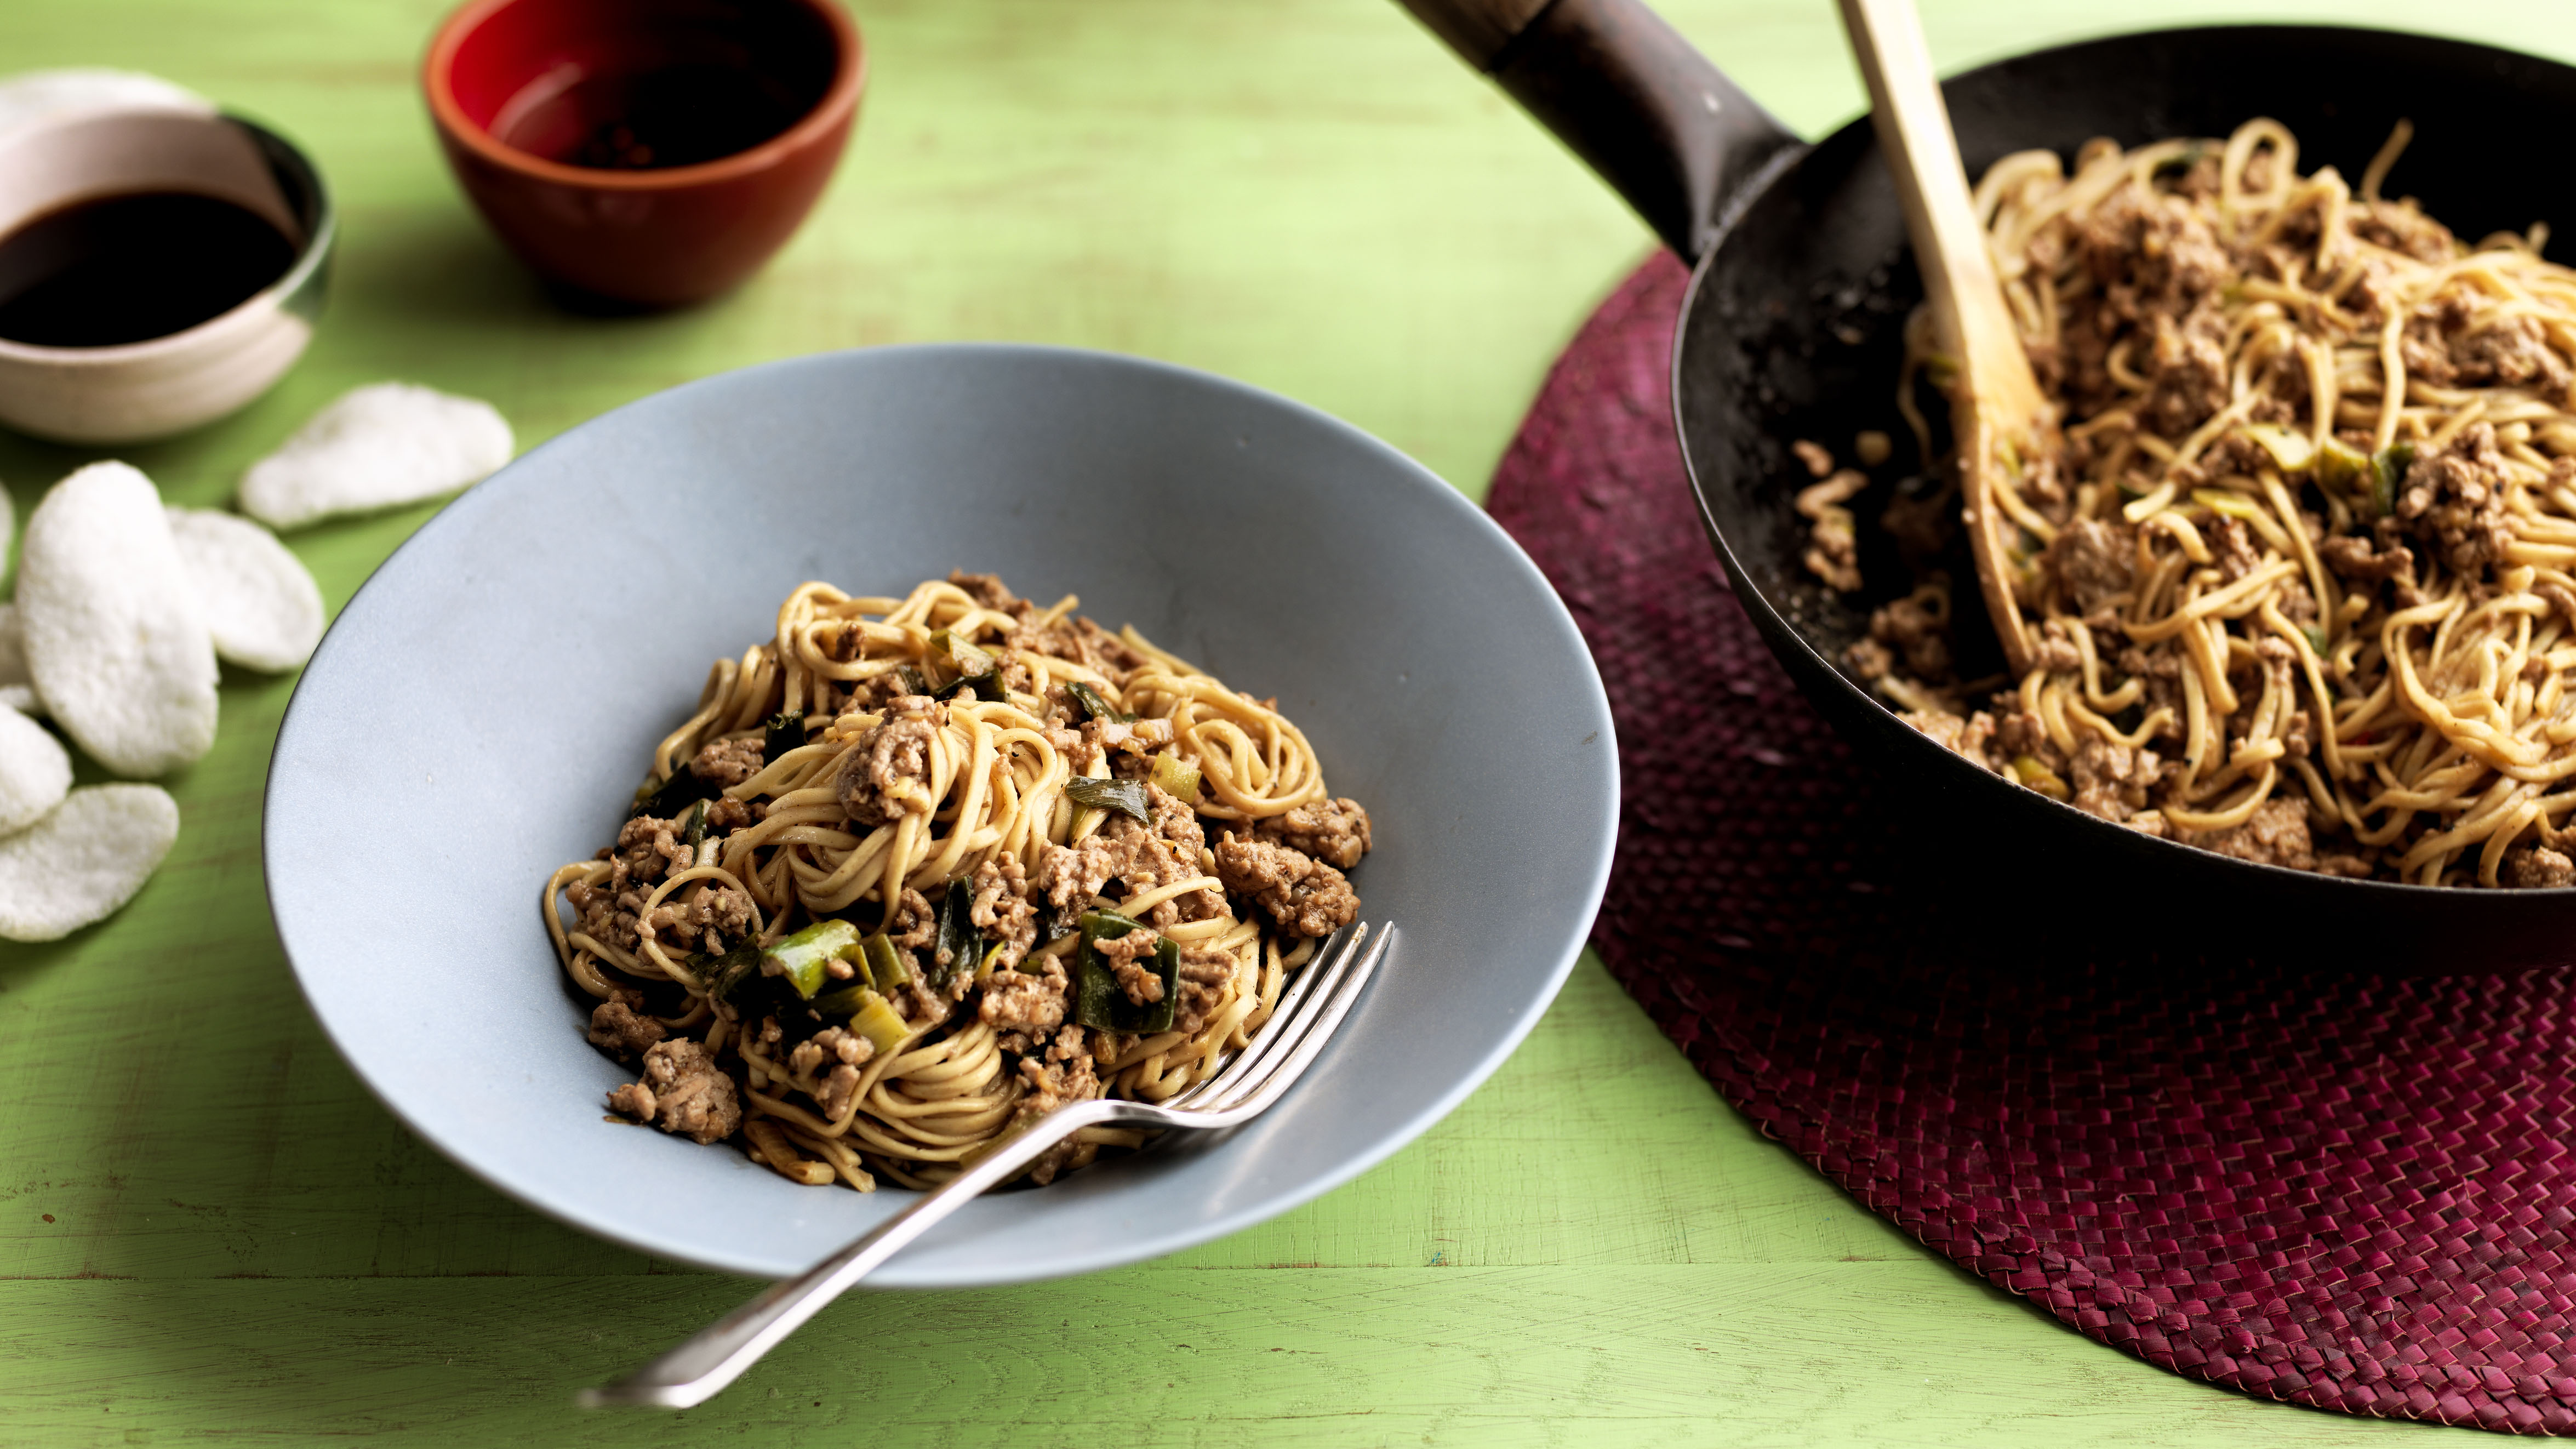 Bbc chinese food made easy chicken chow mein chicken chow mein quick chicken noodles recipe bbc good food forumfinder Gallery